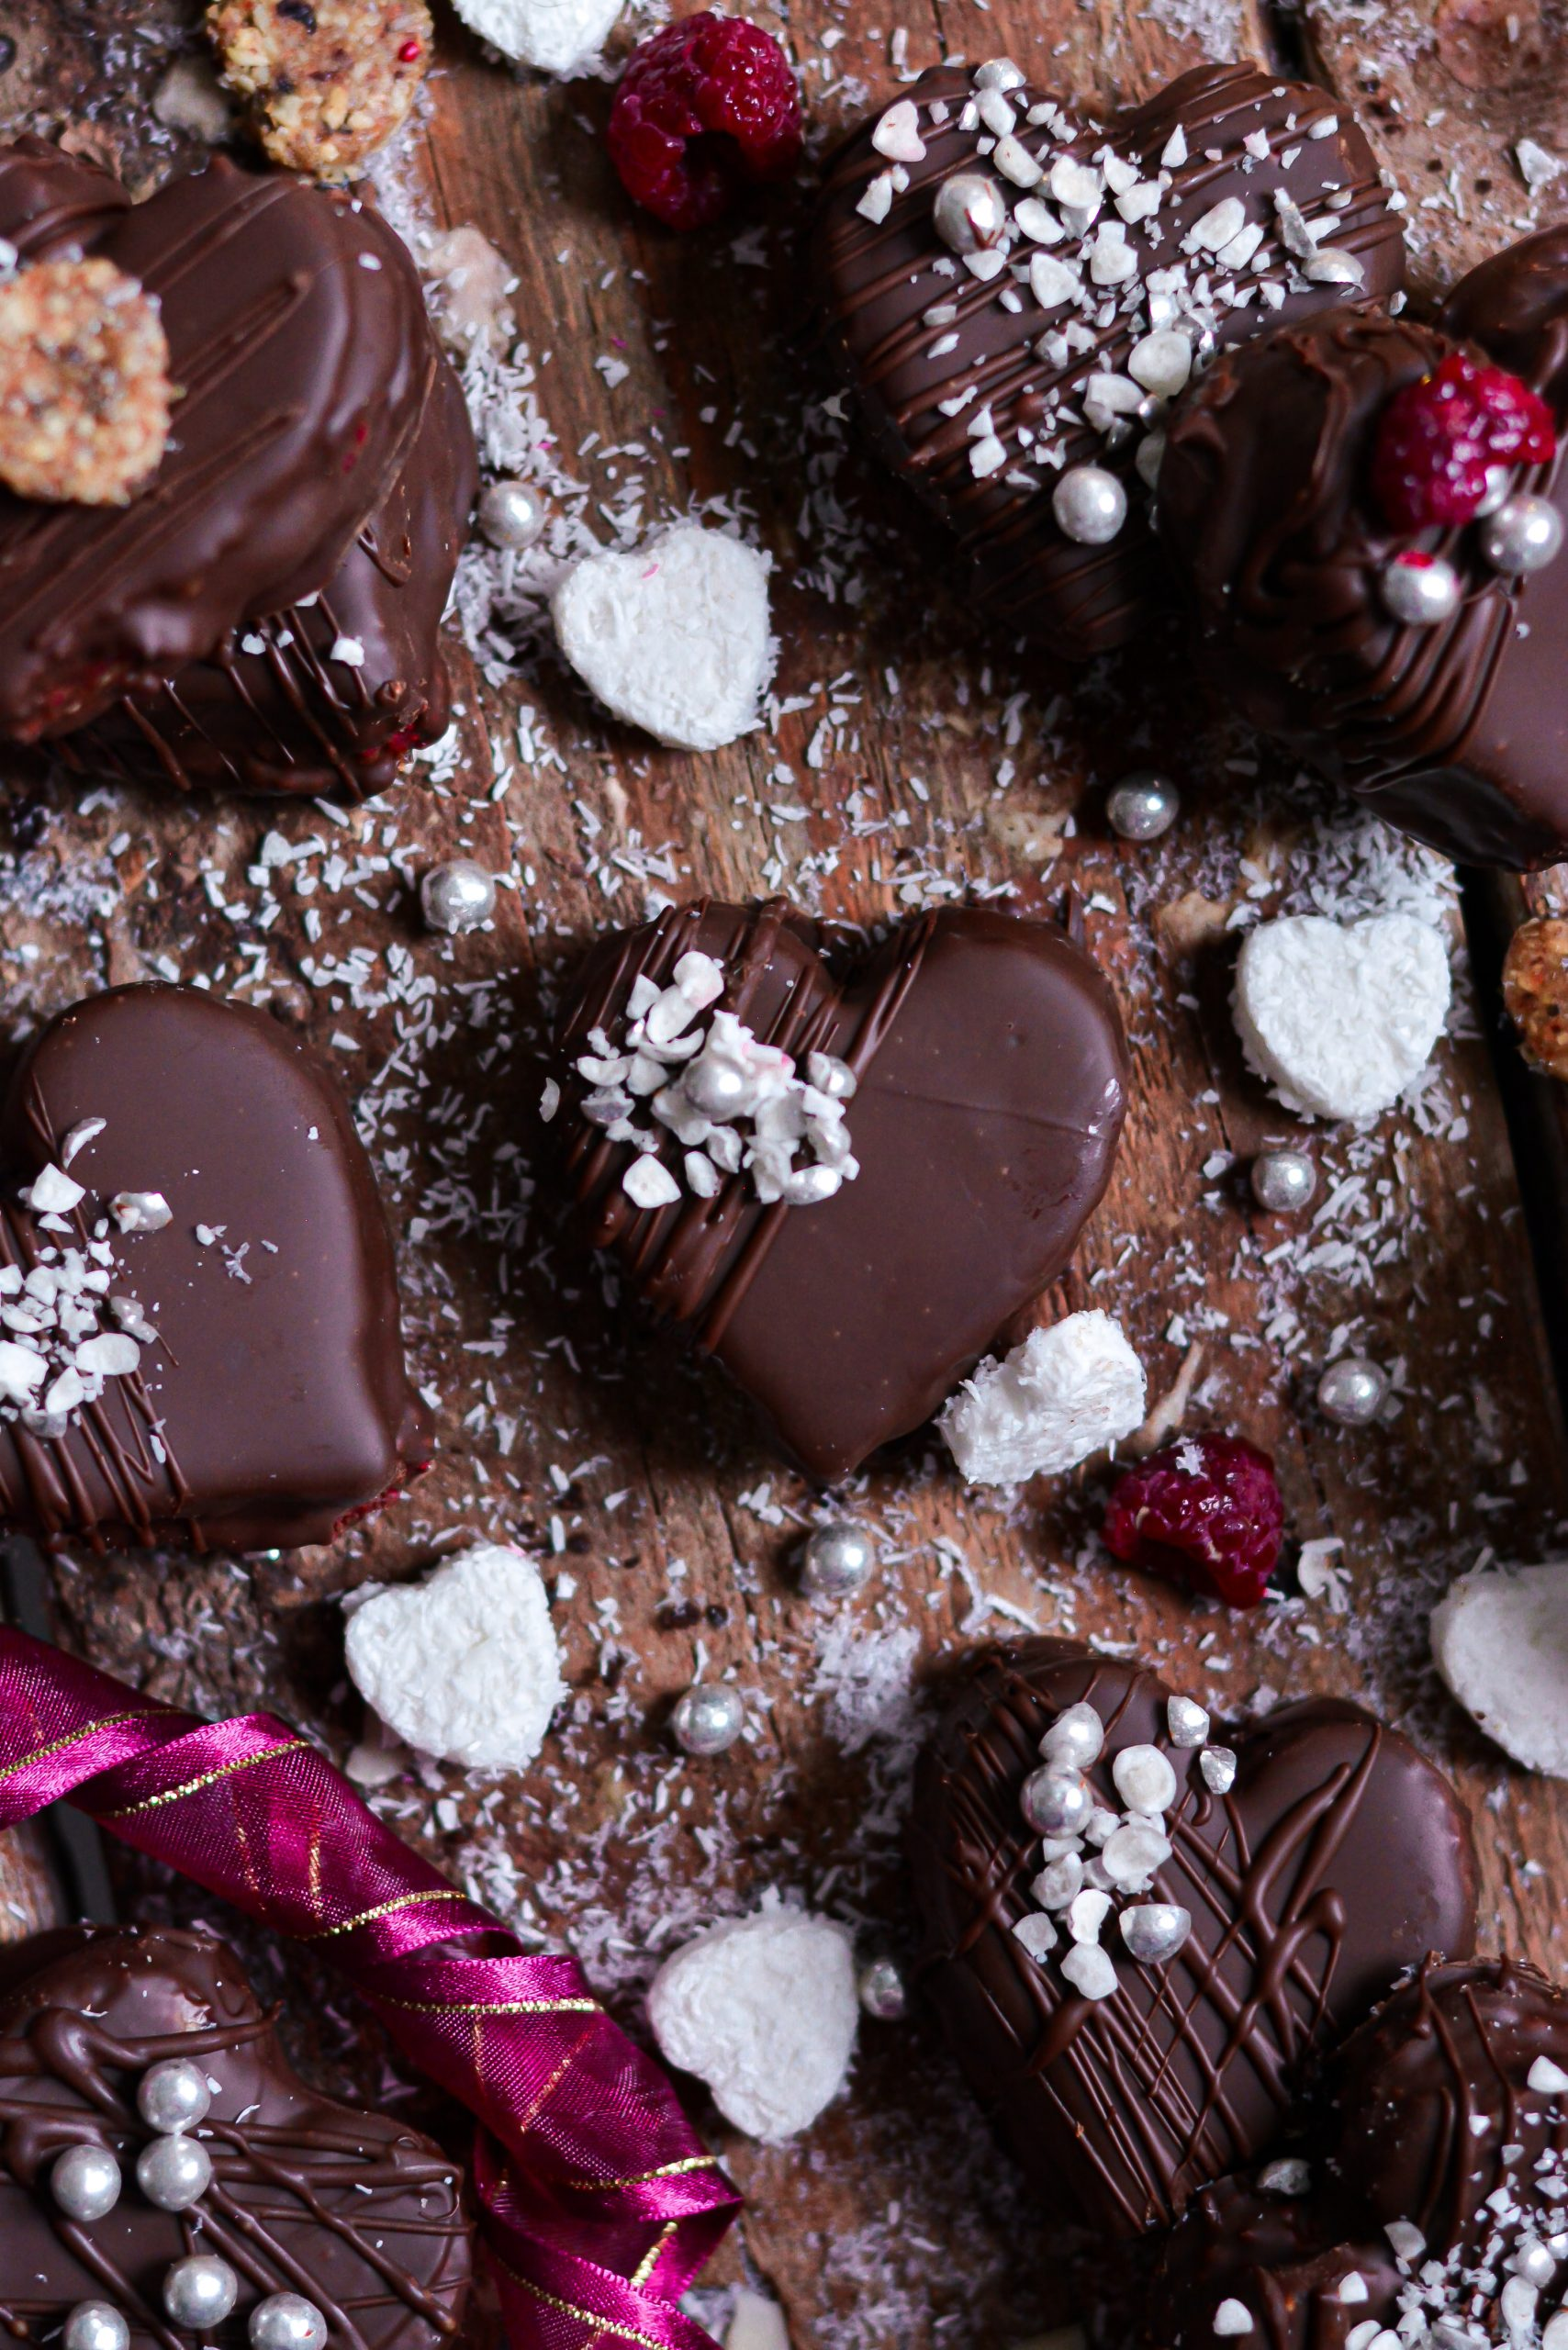 Biscuits Vegan Choco-Framboise Saint Valentin / Vegan No Bake Valentine's Day Cookies